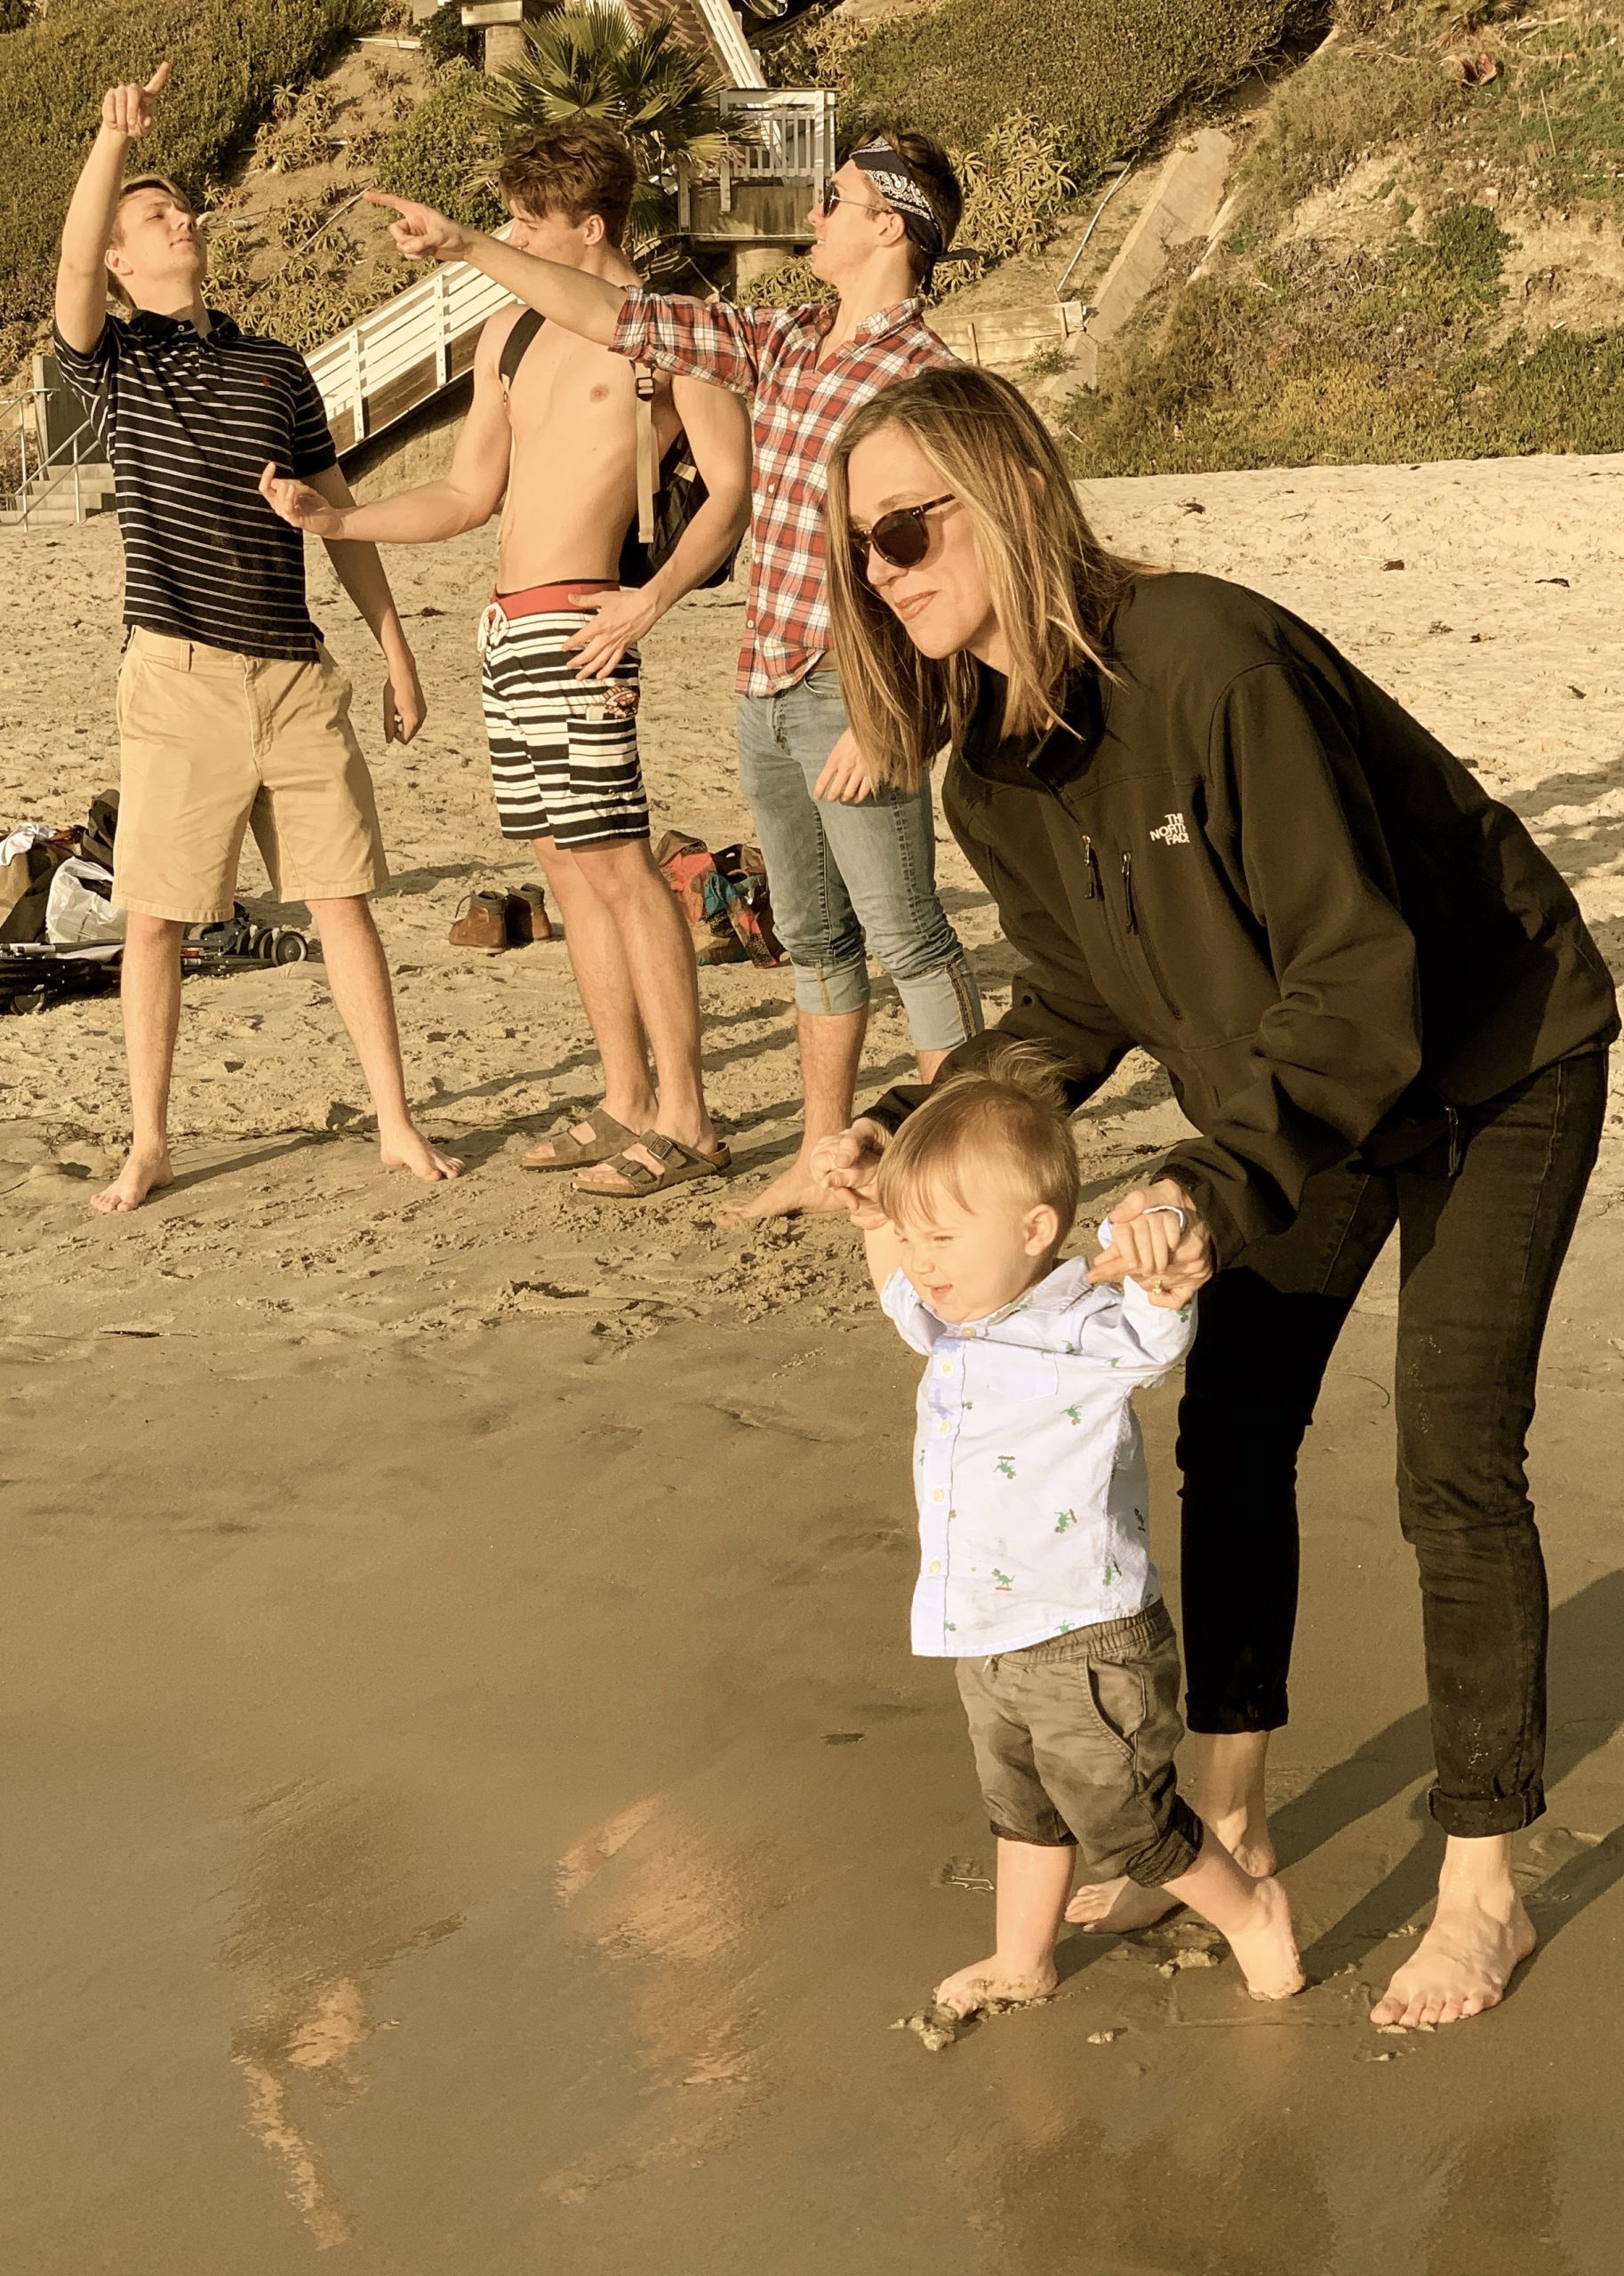 Julie and Liam, with our boys photobombing in the background, in California, 2020.